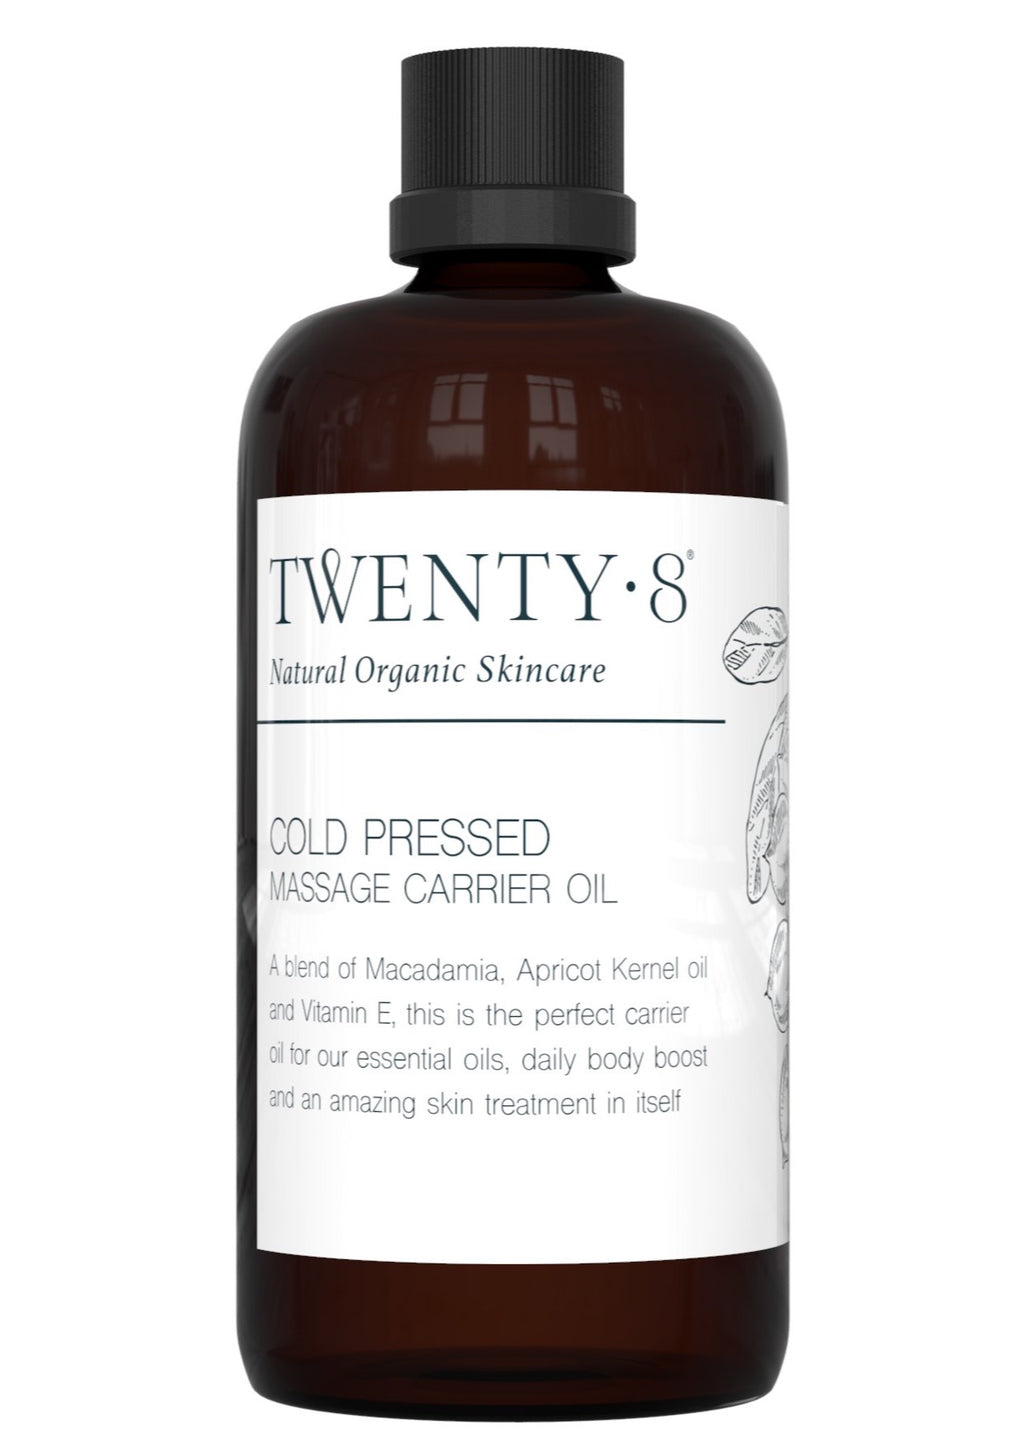 Cold Pressed Massage Carrier Oil, by Twenty8  A cold pressed blend of Macadamia, Apricot Kernel oil and Vitamin E, this is the perfect carrier oil an amazing skin treatment in itself.  It is the perfect base to add your essential oil synergy blends to for your daily mind and skin boost.